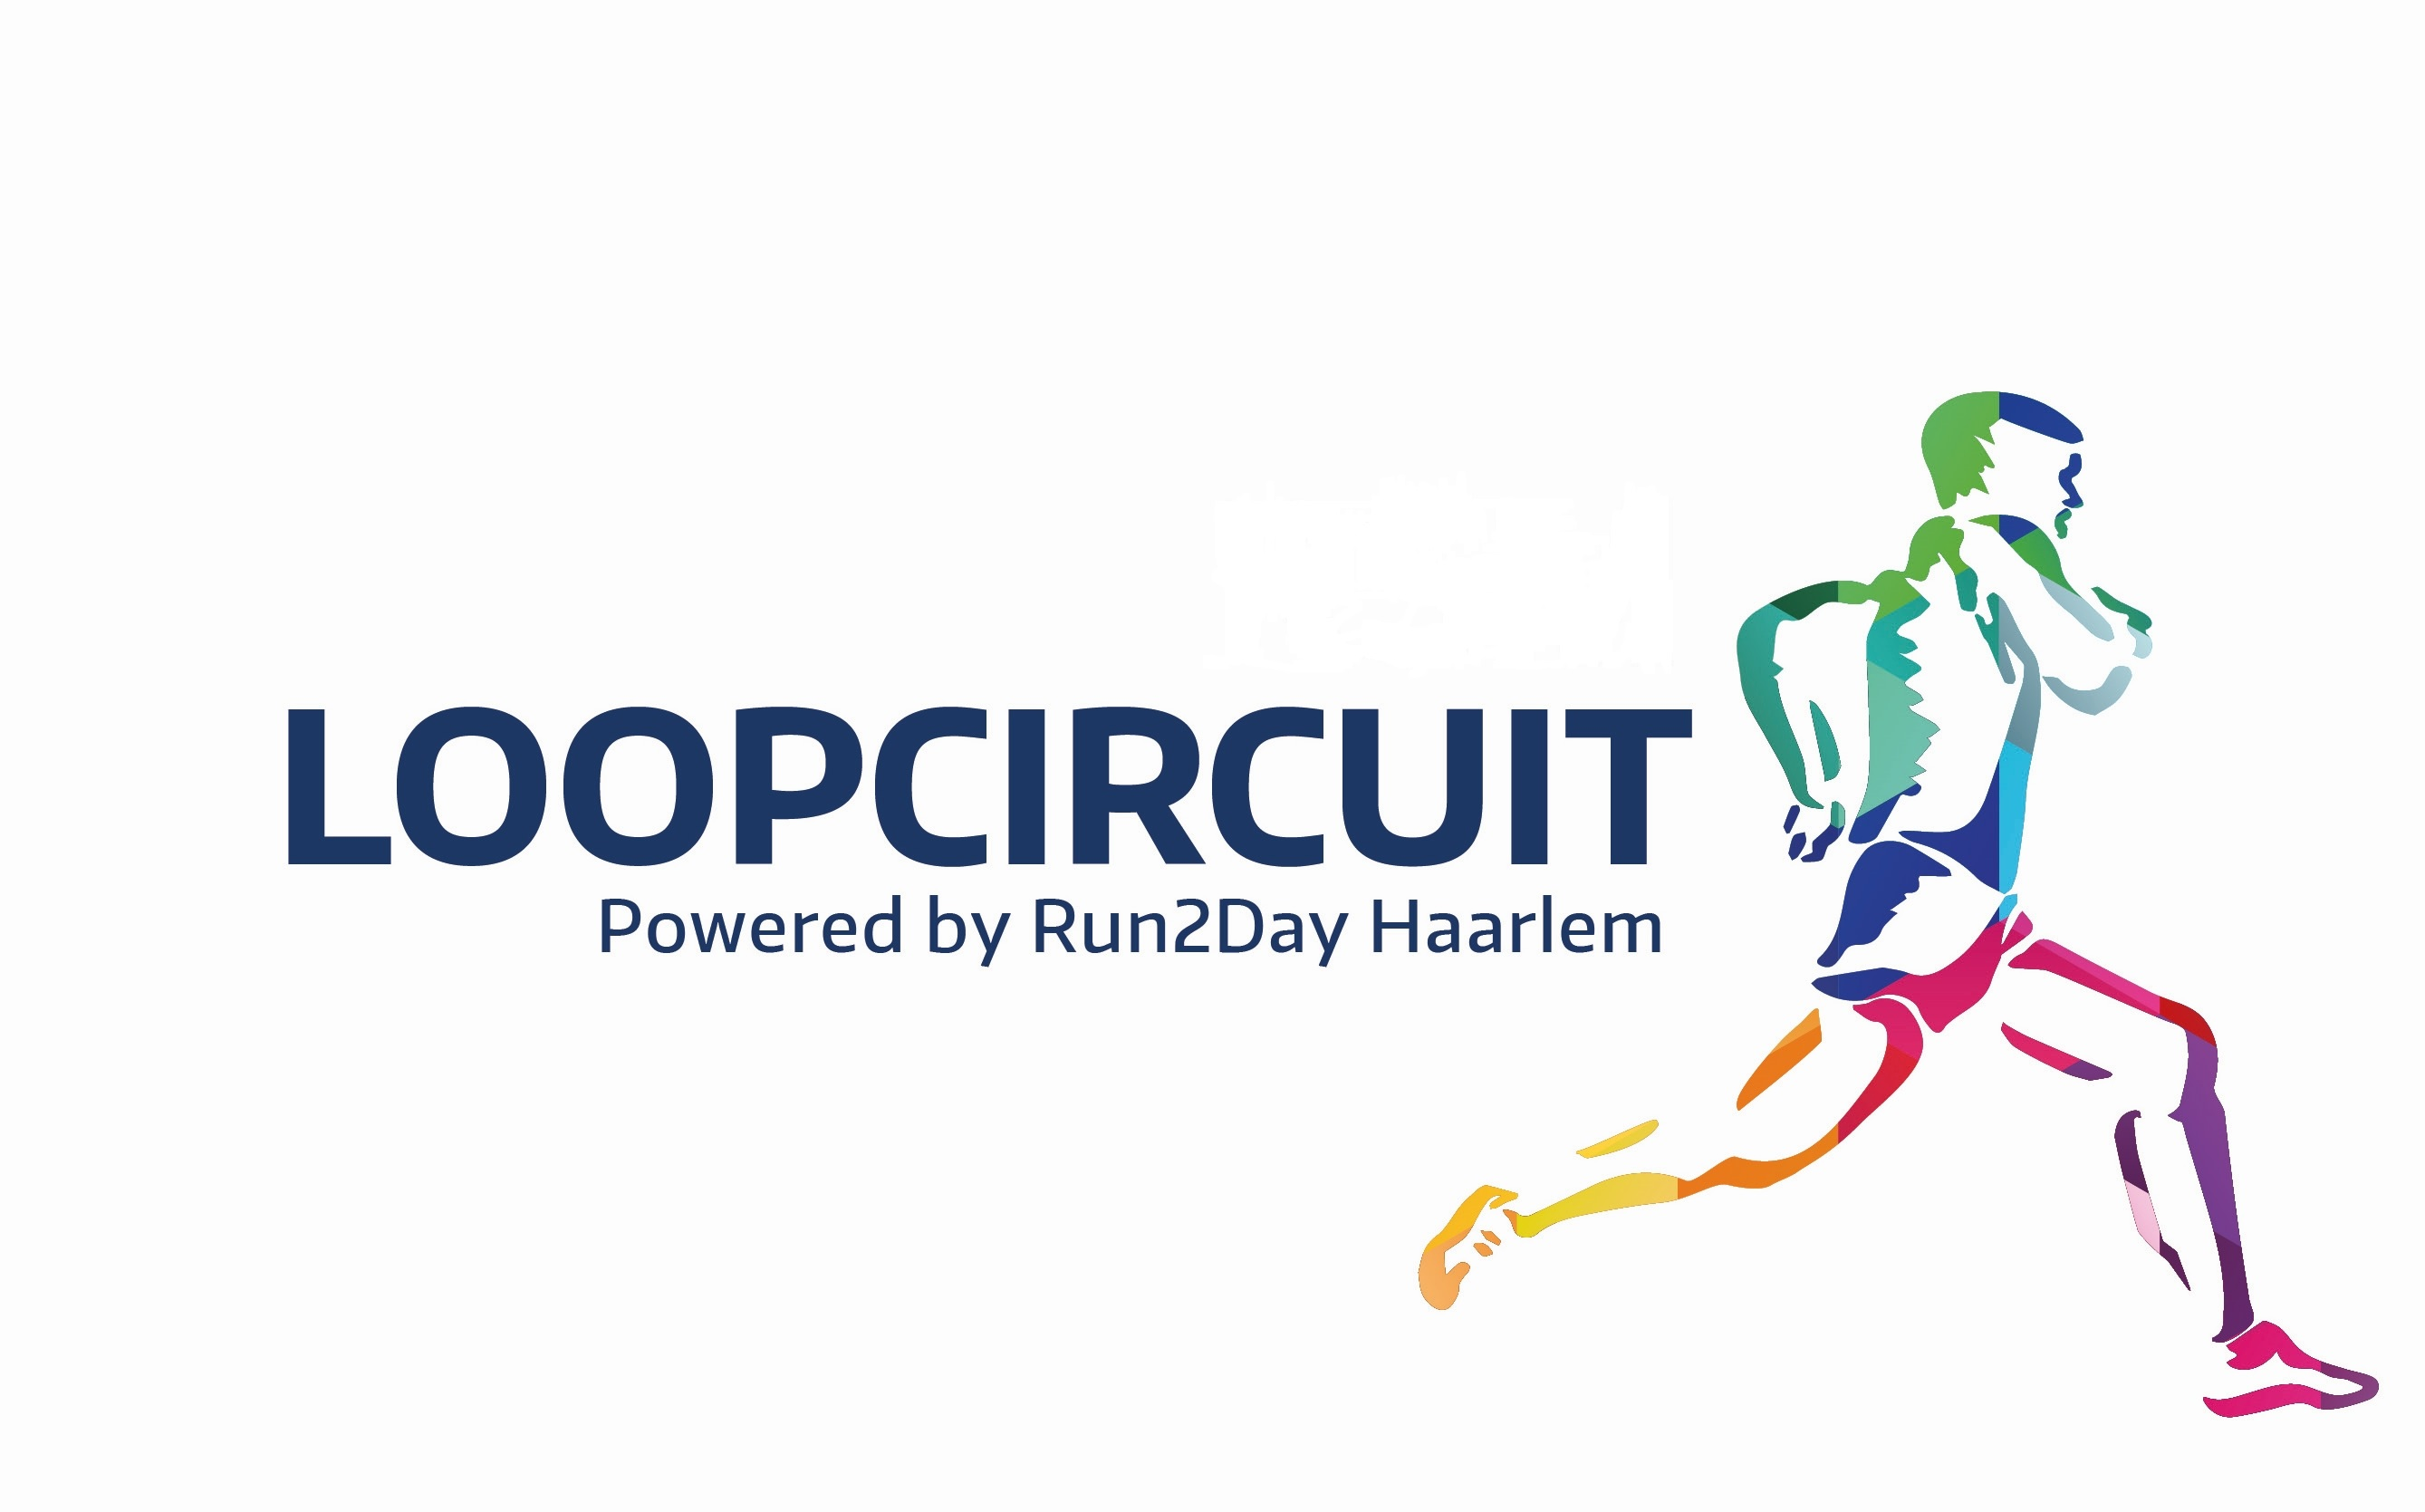 Loopcircuit, Powered by Run2Day Haarlem